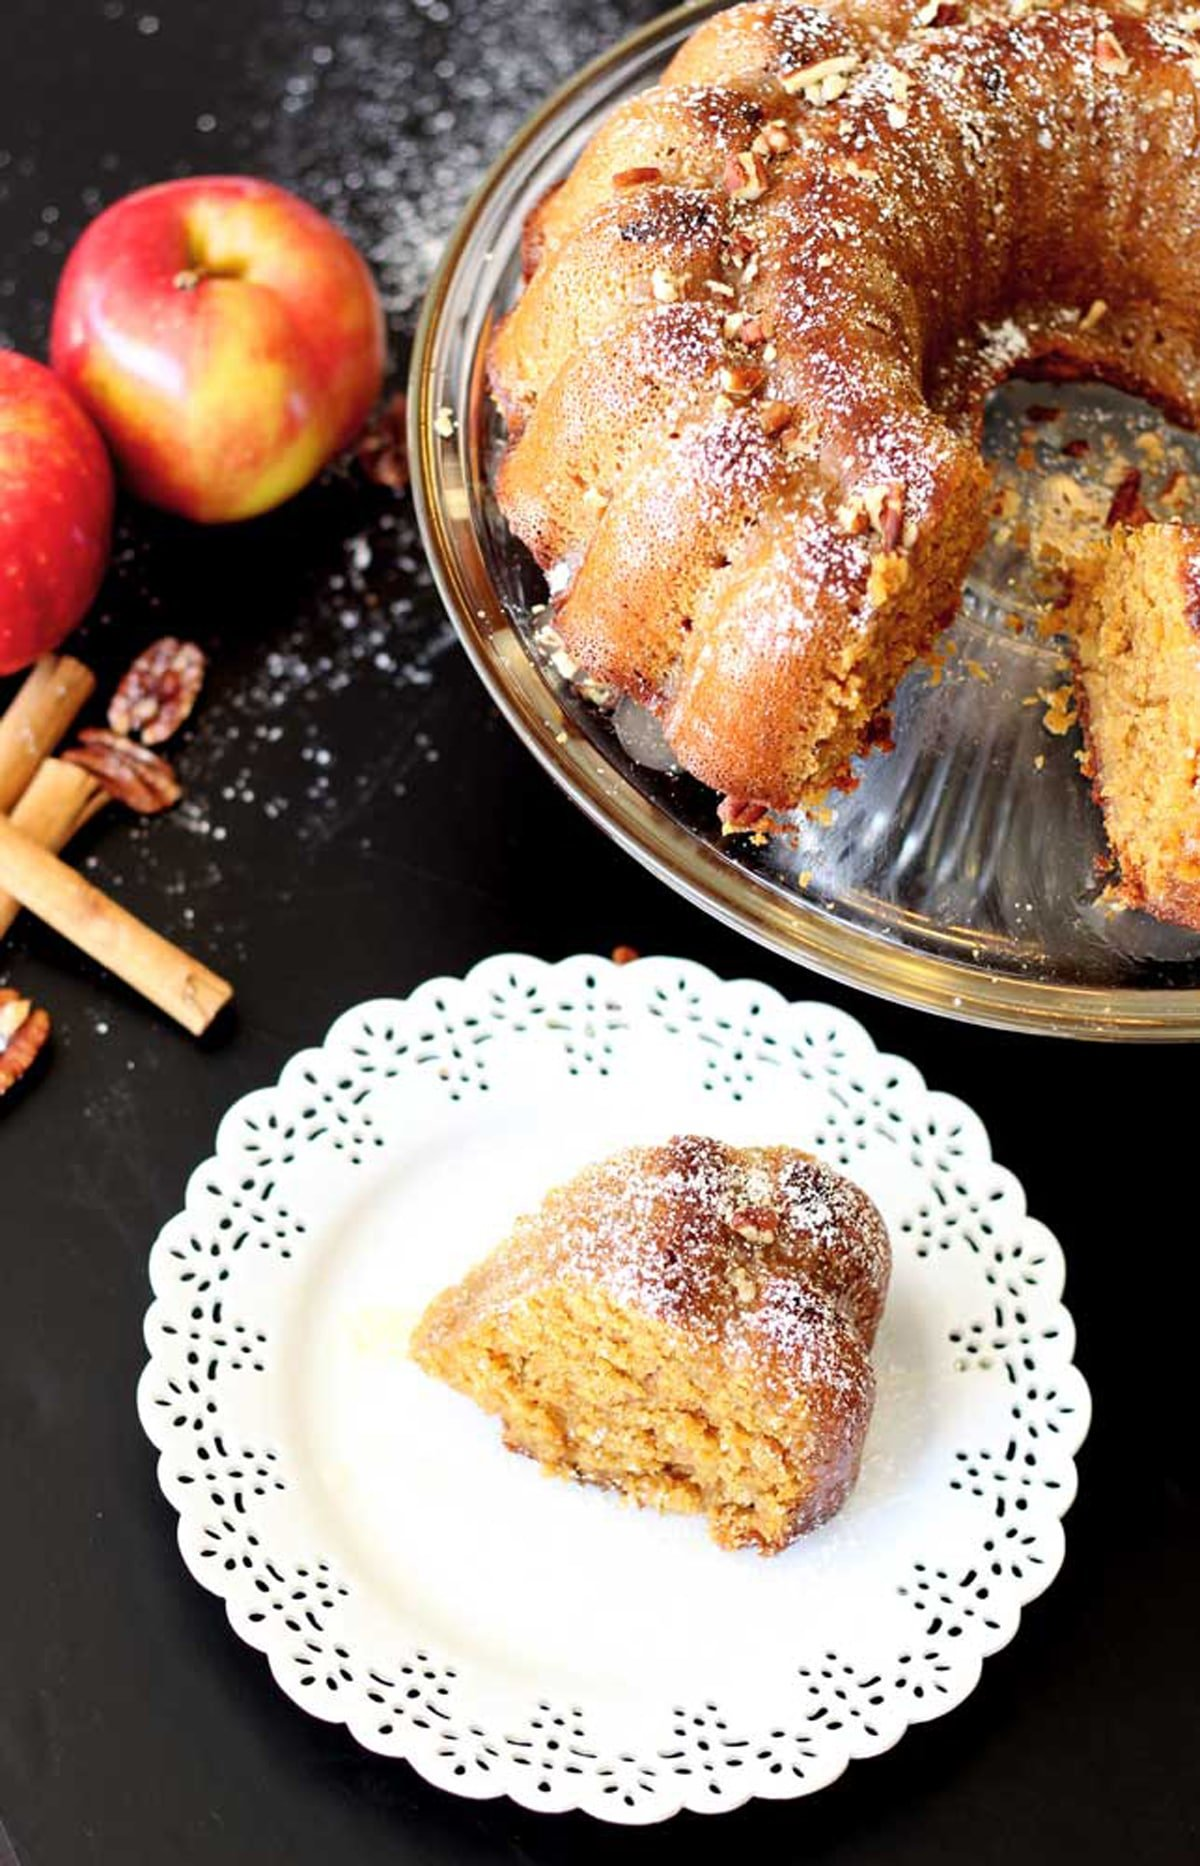 Sliced apple pumpkin bundt cake sitting on a glass cake platter, white lace plate containing a slice of cake with 2 red apples with cinnamon stick and pecans on a black table.